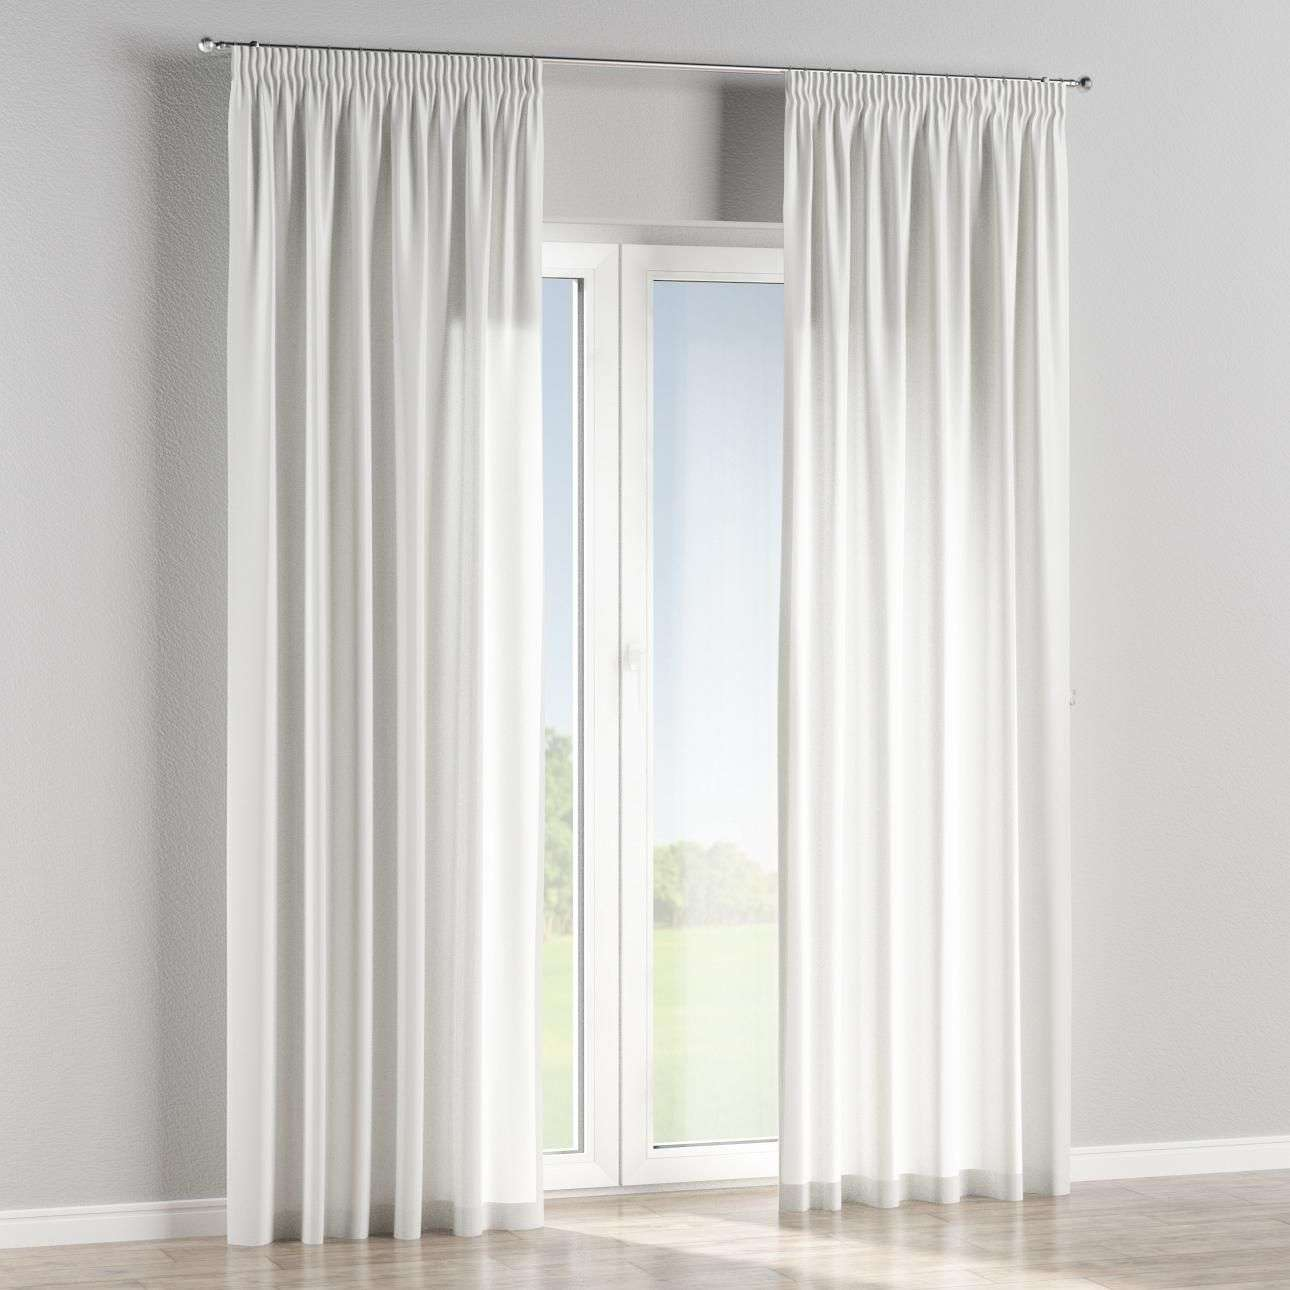 Pencil pleat lined curtains in collection Ashley, fabric: 137-73